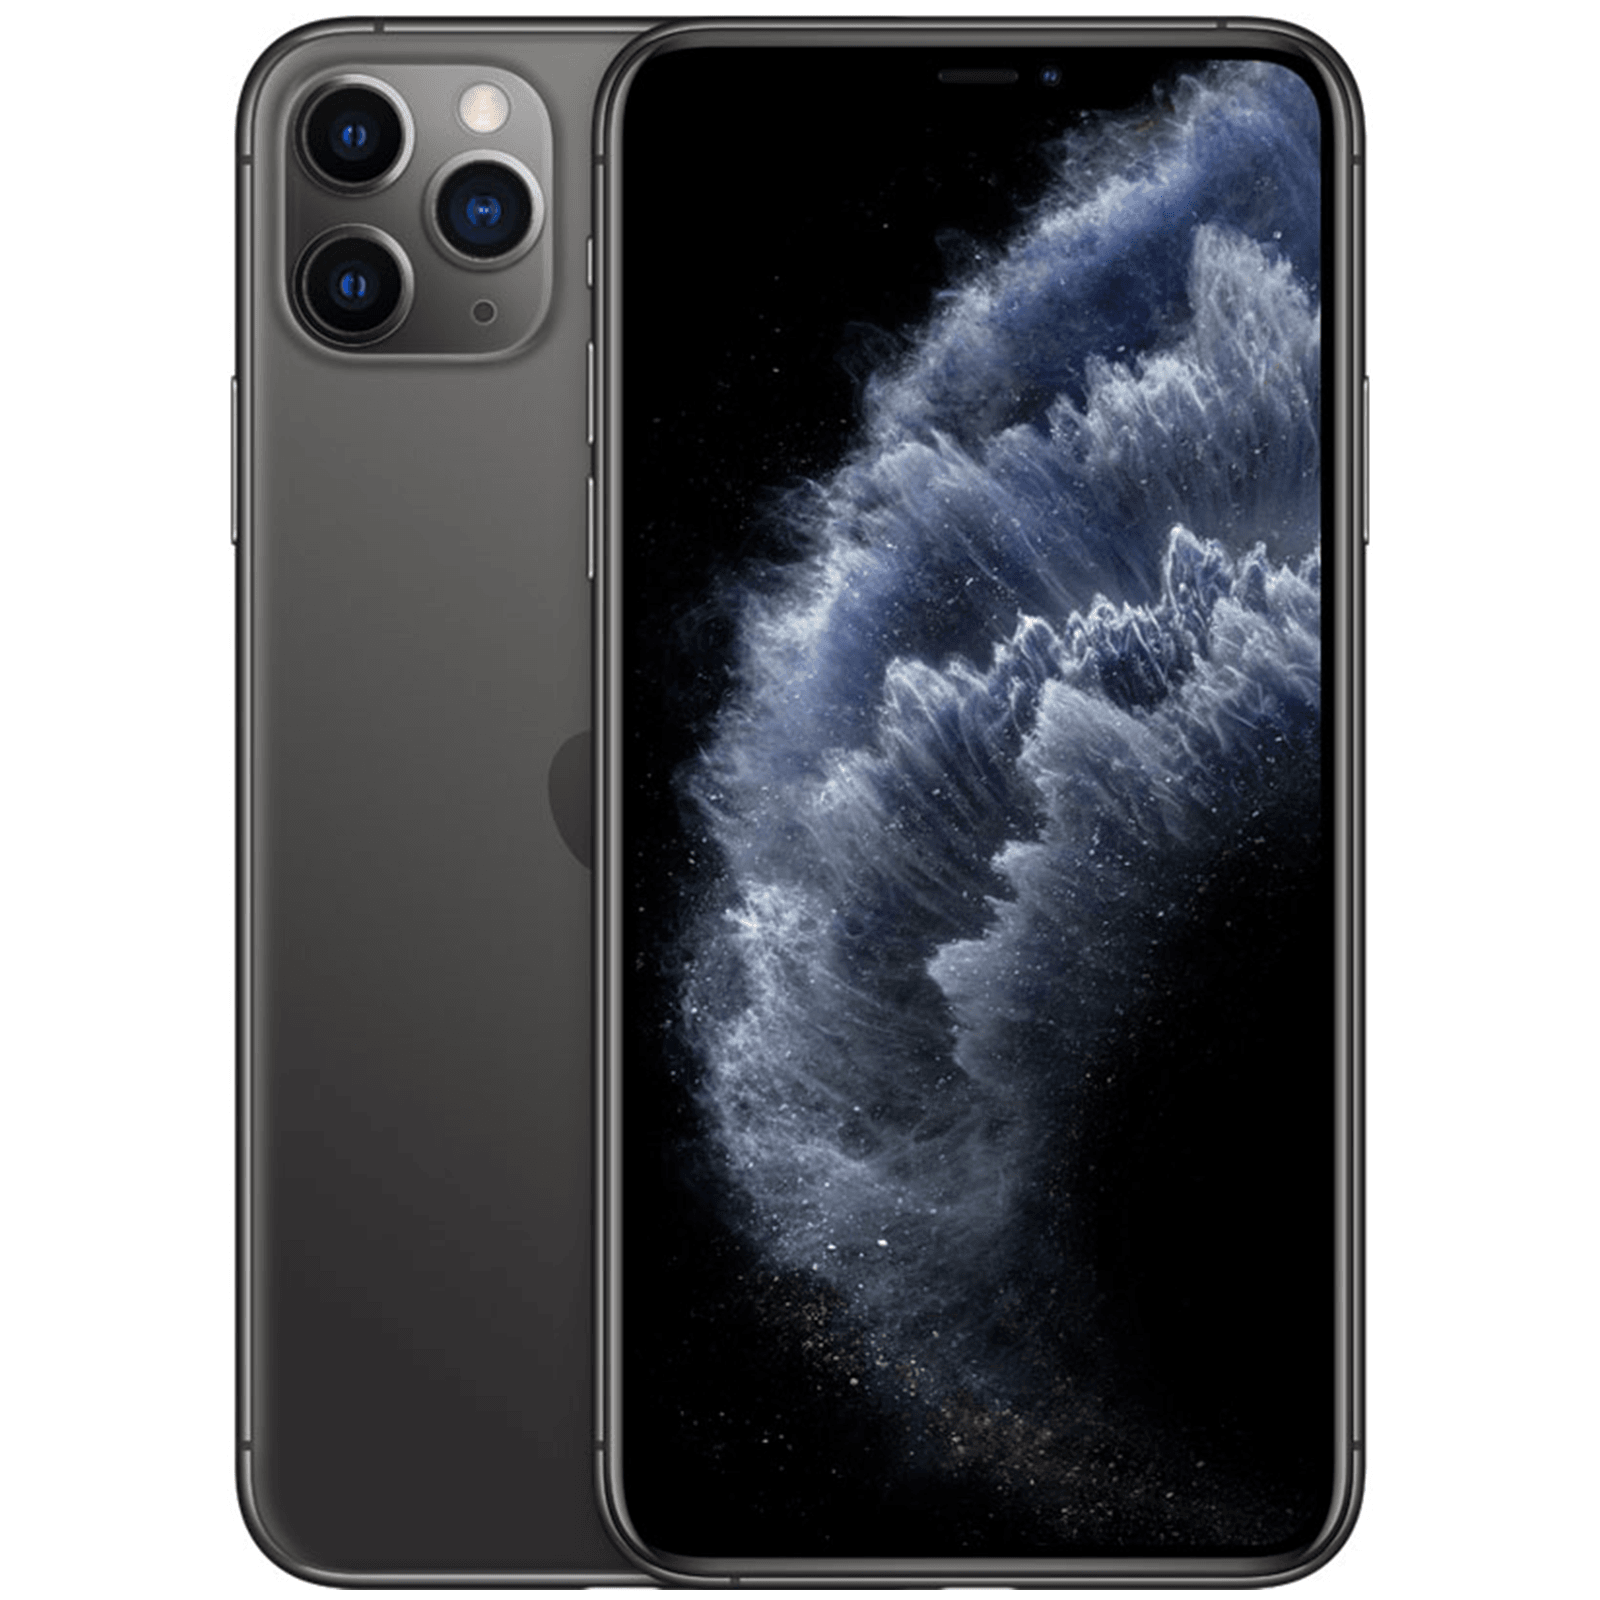 iPhone 11 Pro Max for business